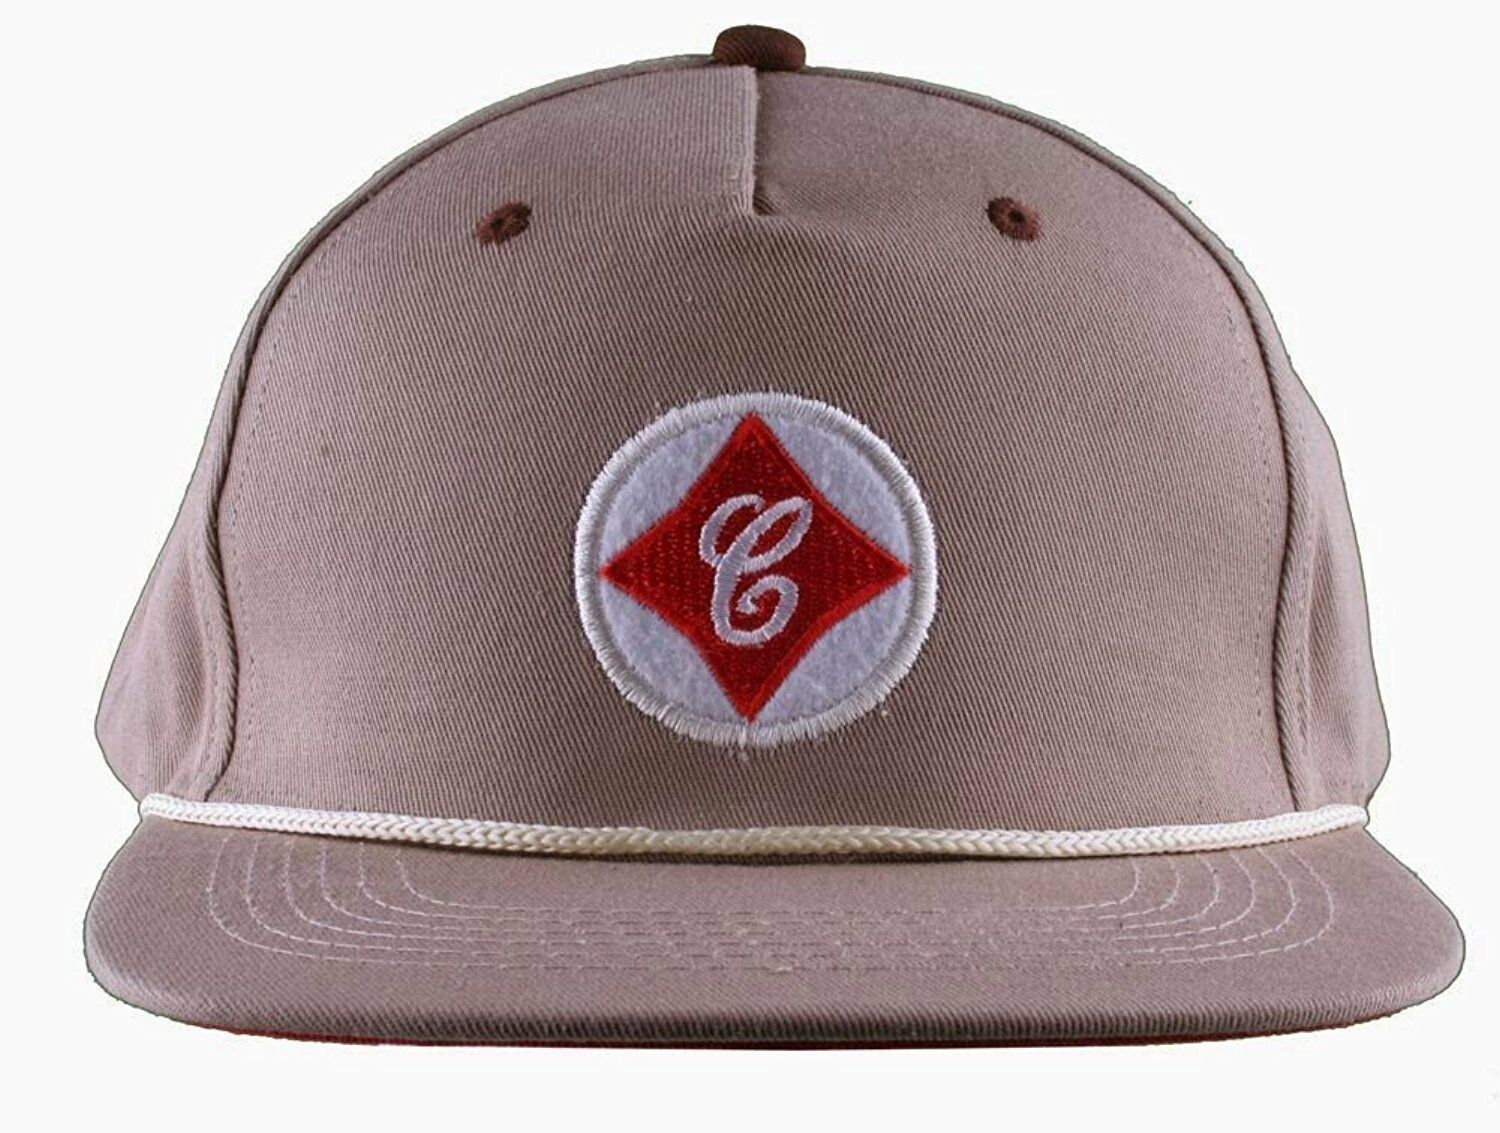 Cousins SportsWear Men's Cook County Leather Strapback Baseball Hat Cap NWT